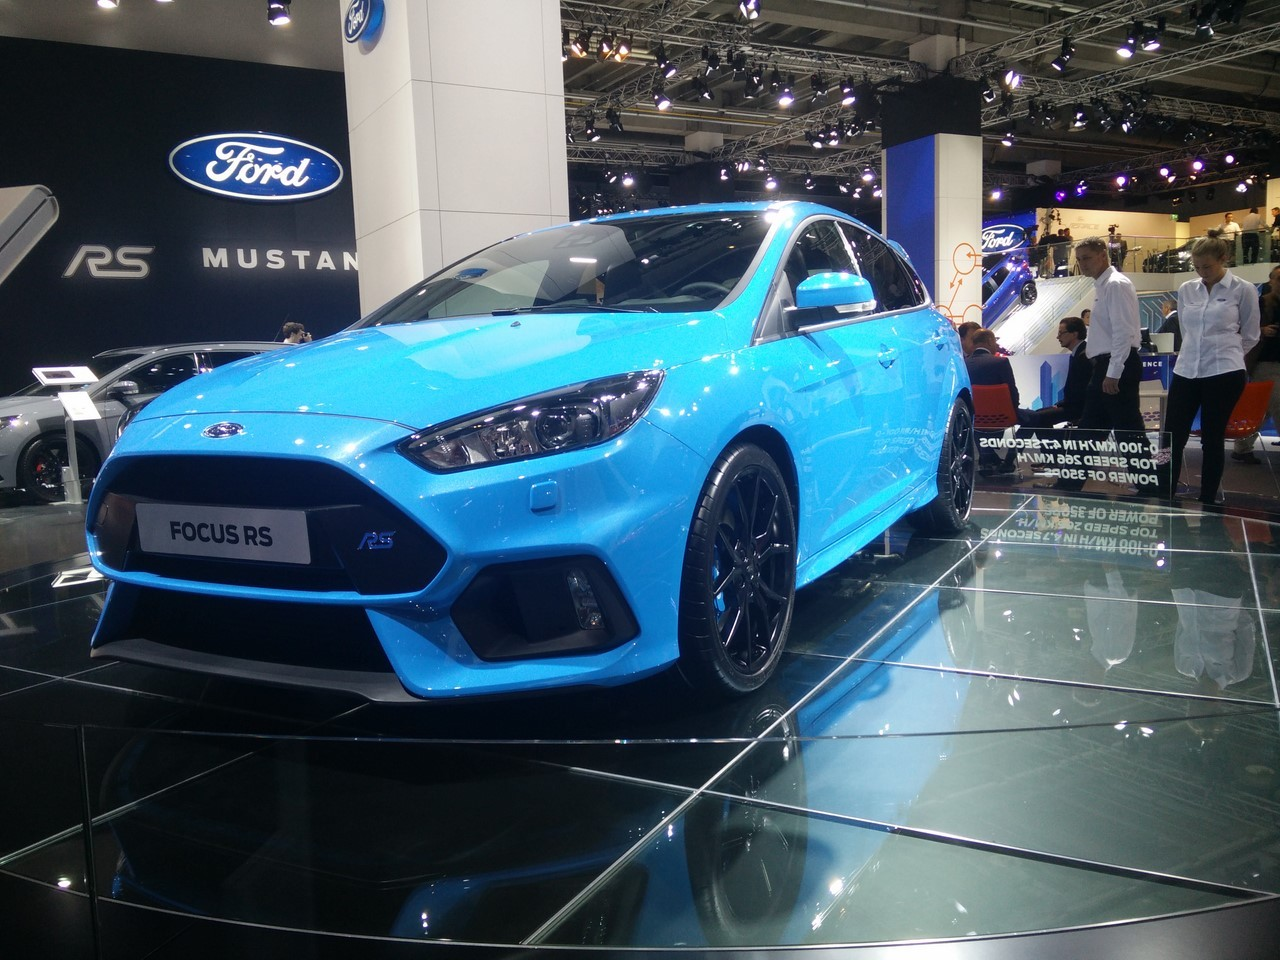 prix ford focus rs 2016 38 600 euros la nouvelle focus rs photo 2 l 39 argus. Black Bedroom Furniture Sets. Home Design Ideas